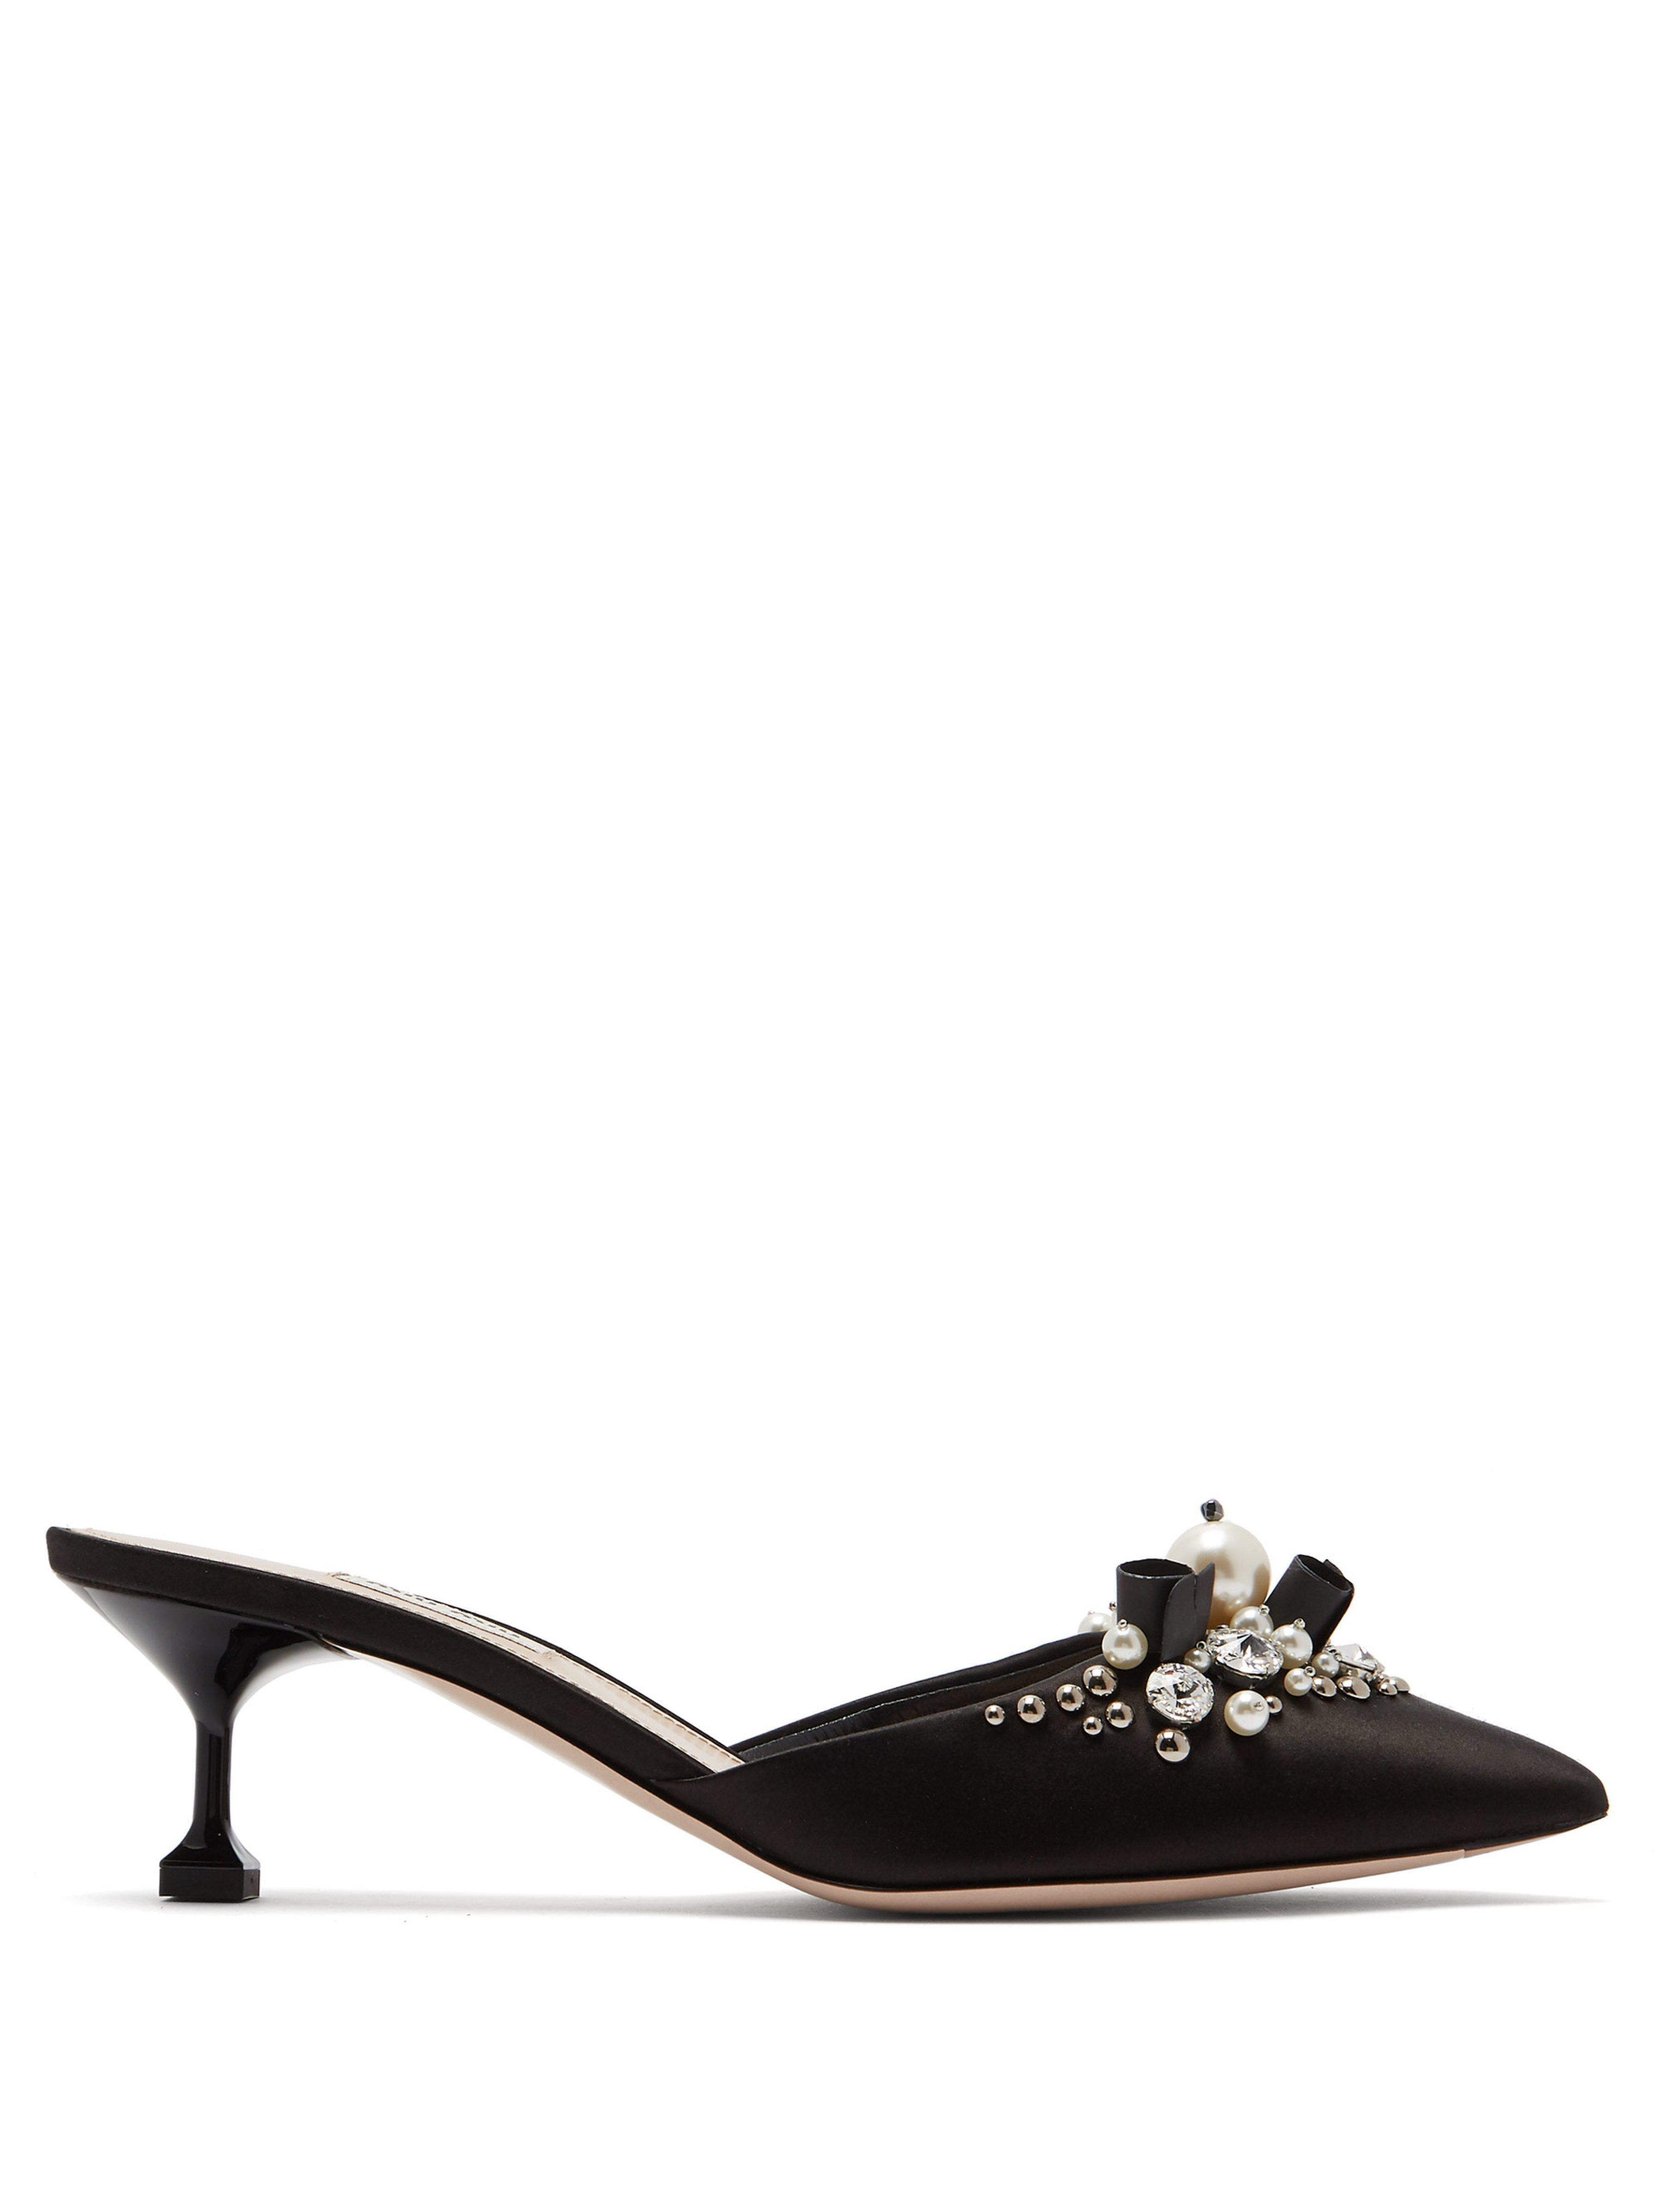 85ba2b65ae Miu Miu Faux Pearl And Crystal Embellished Satin Mules in Black - Lyst